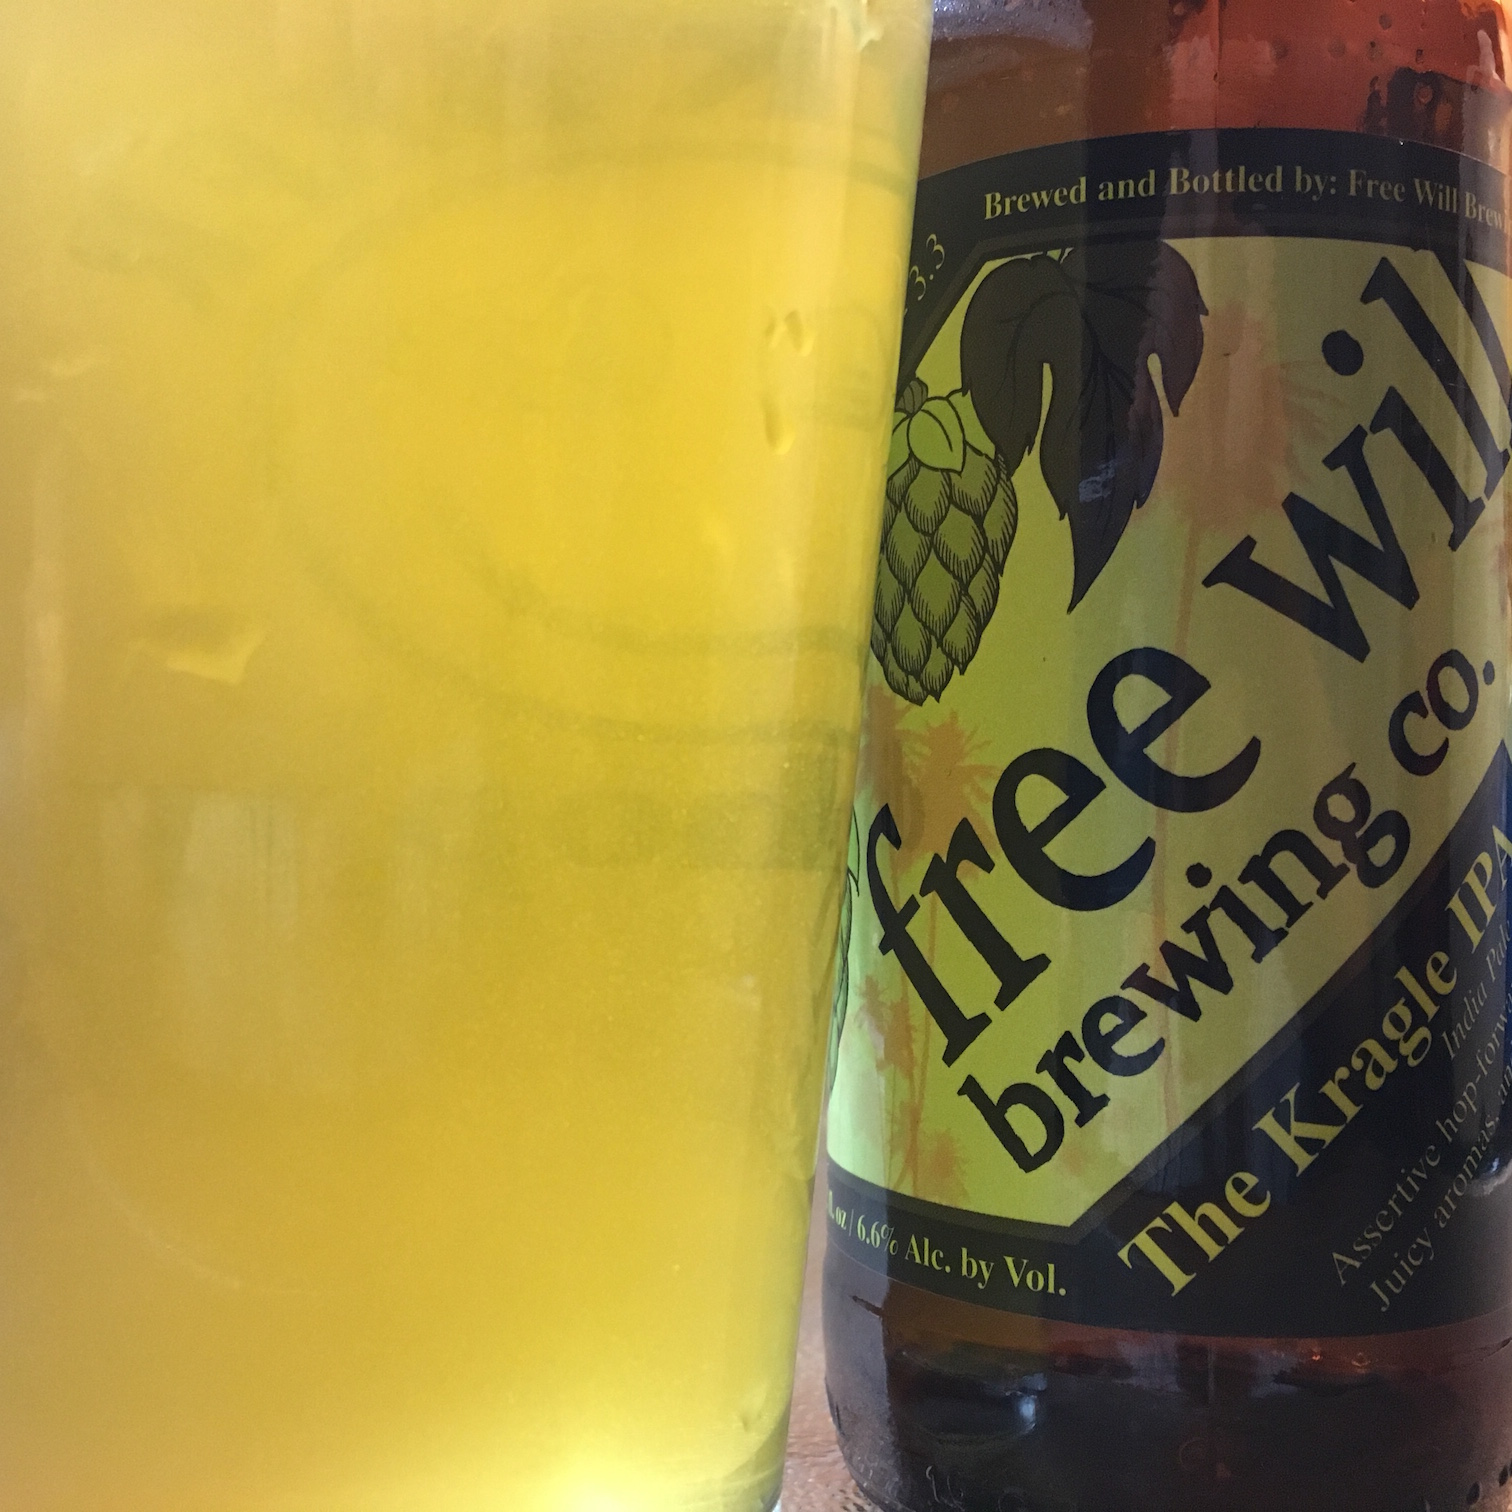 The Kragle IPA - Free Will Brewing Co.